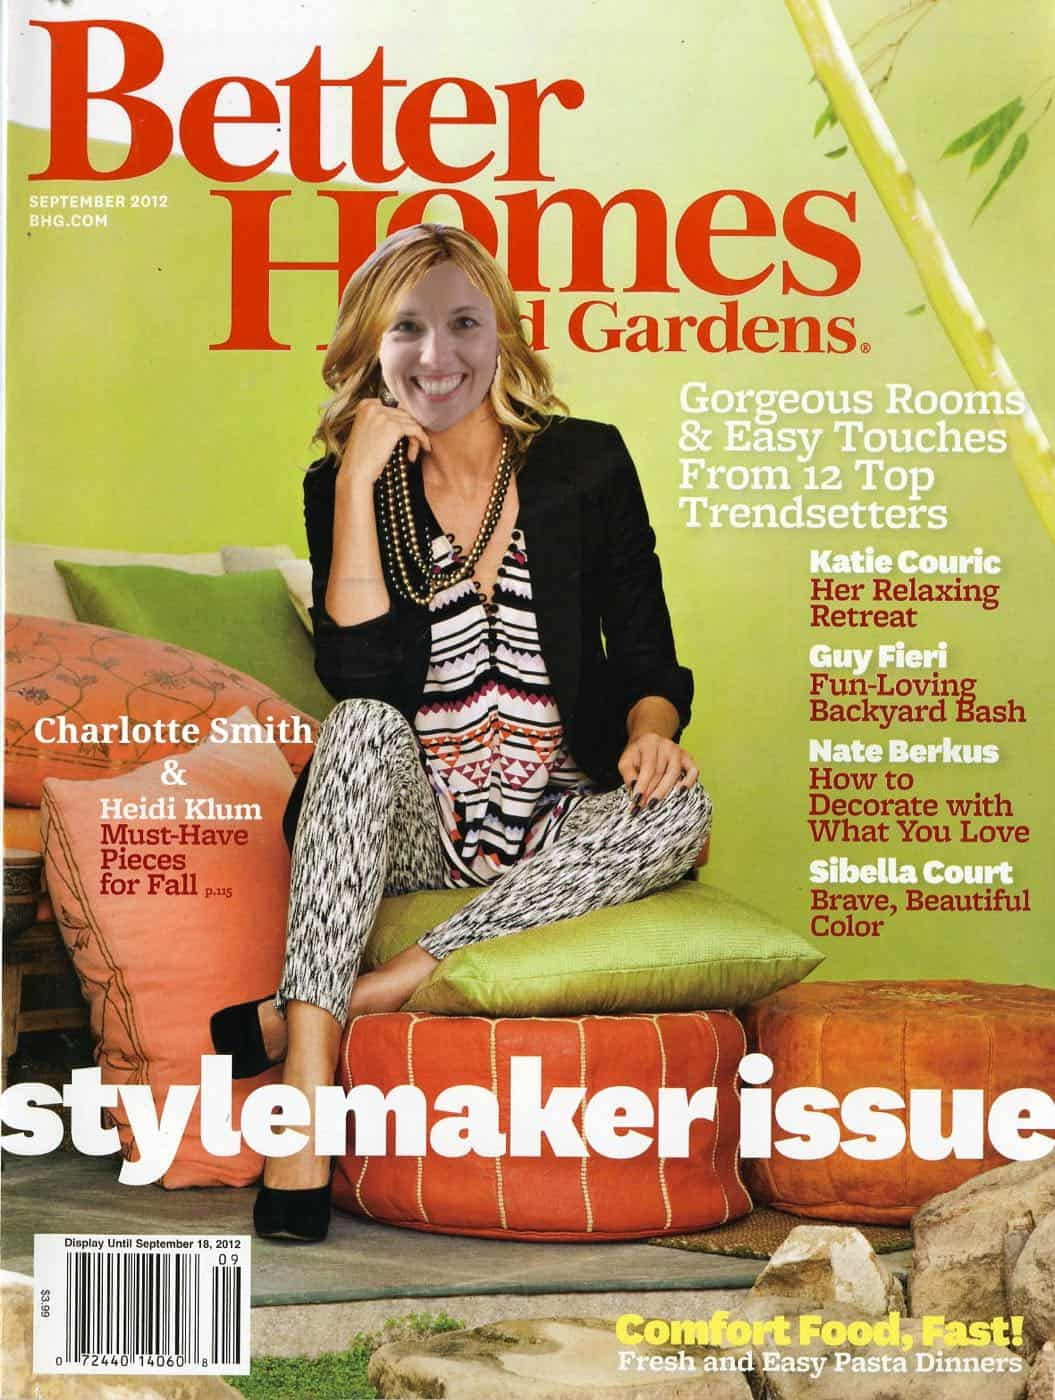 My Photo Shoot With Better Homes and Gardens